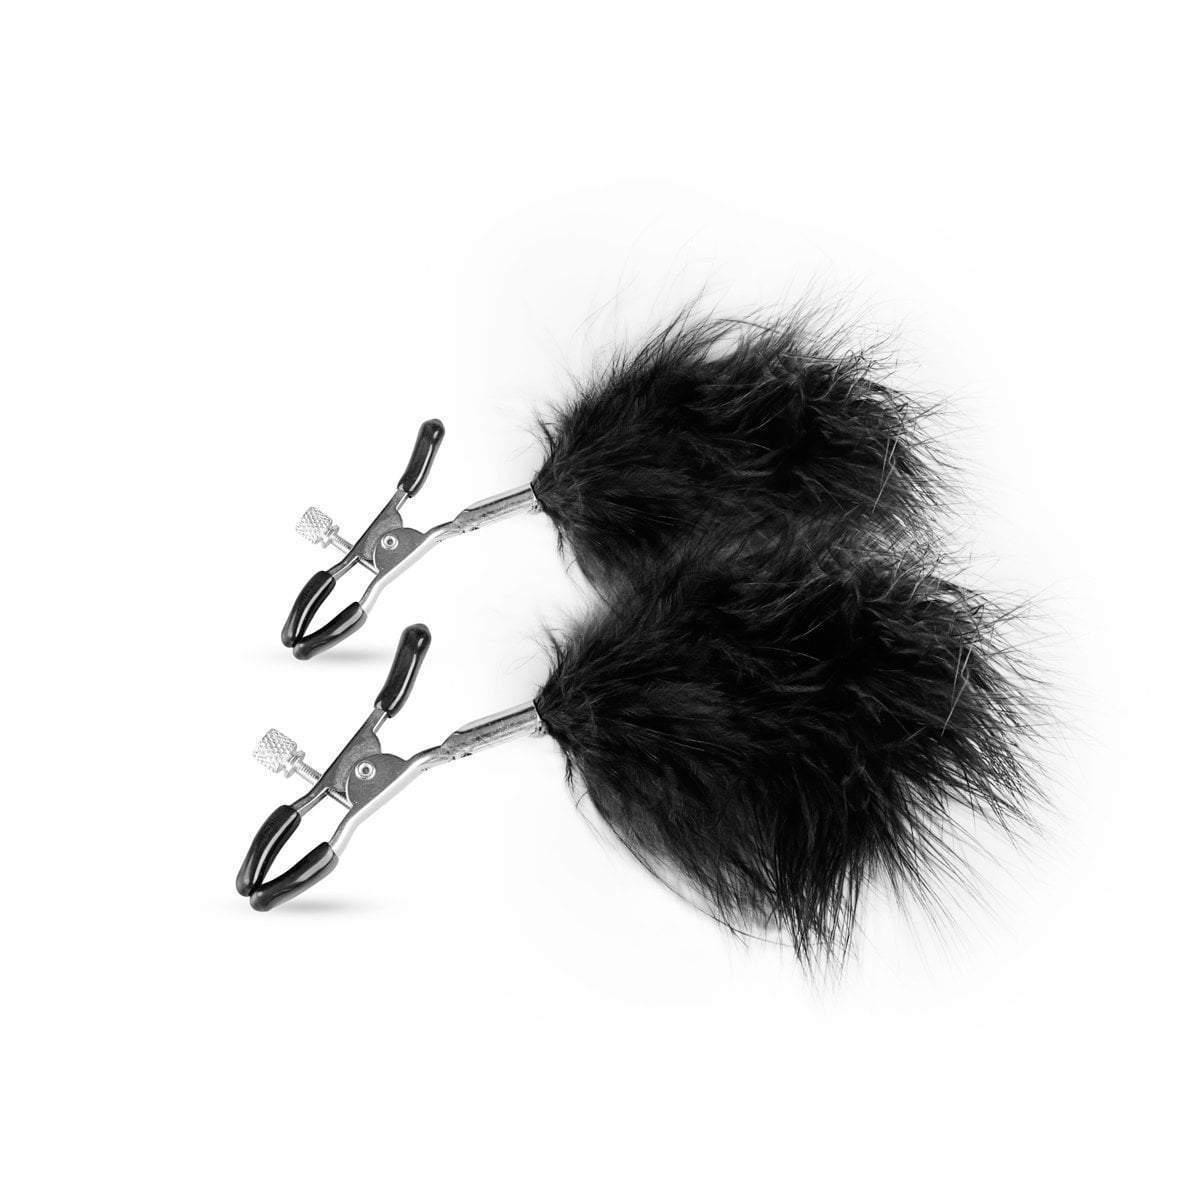 Easy Toys Fetish Collection nipple clamp Adjustable Nipple Clamps With Feathers